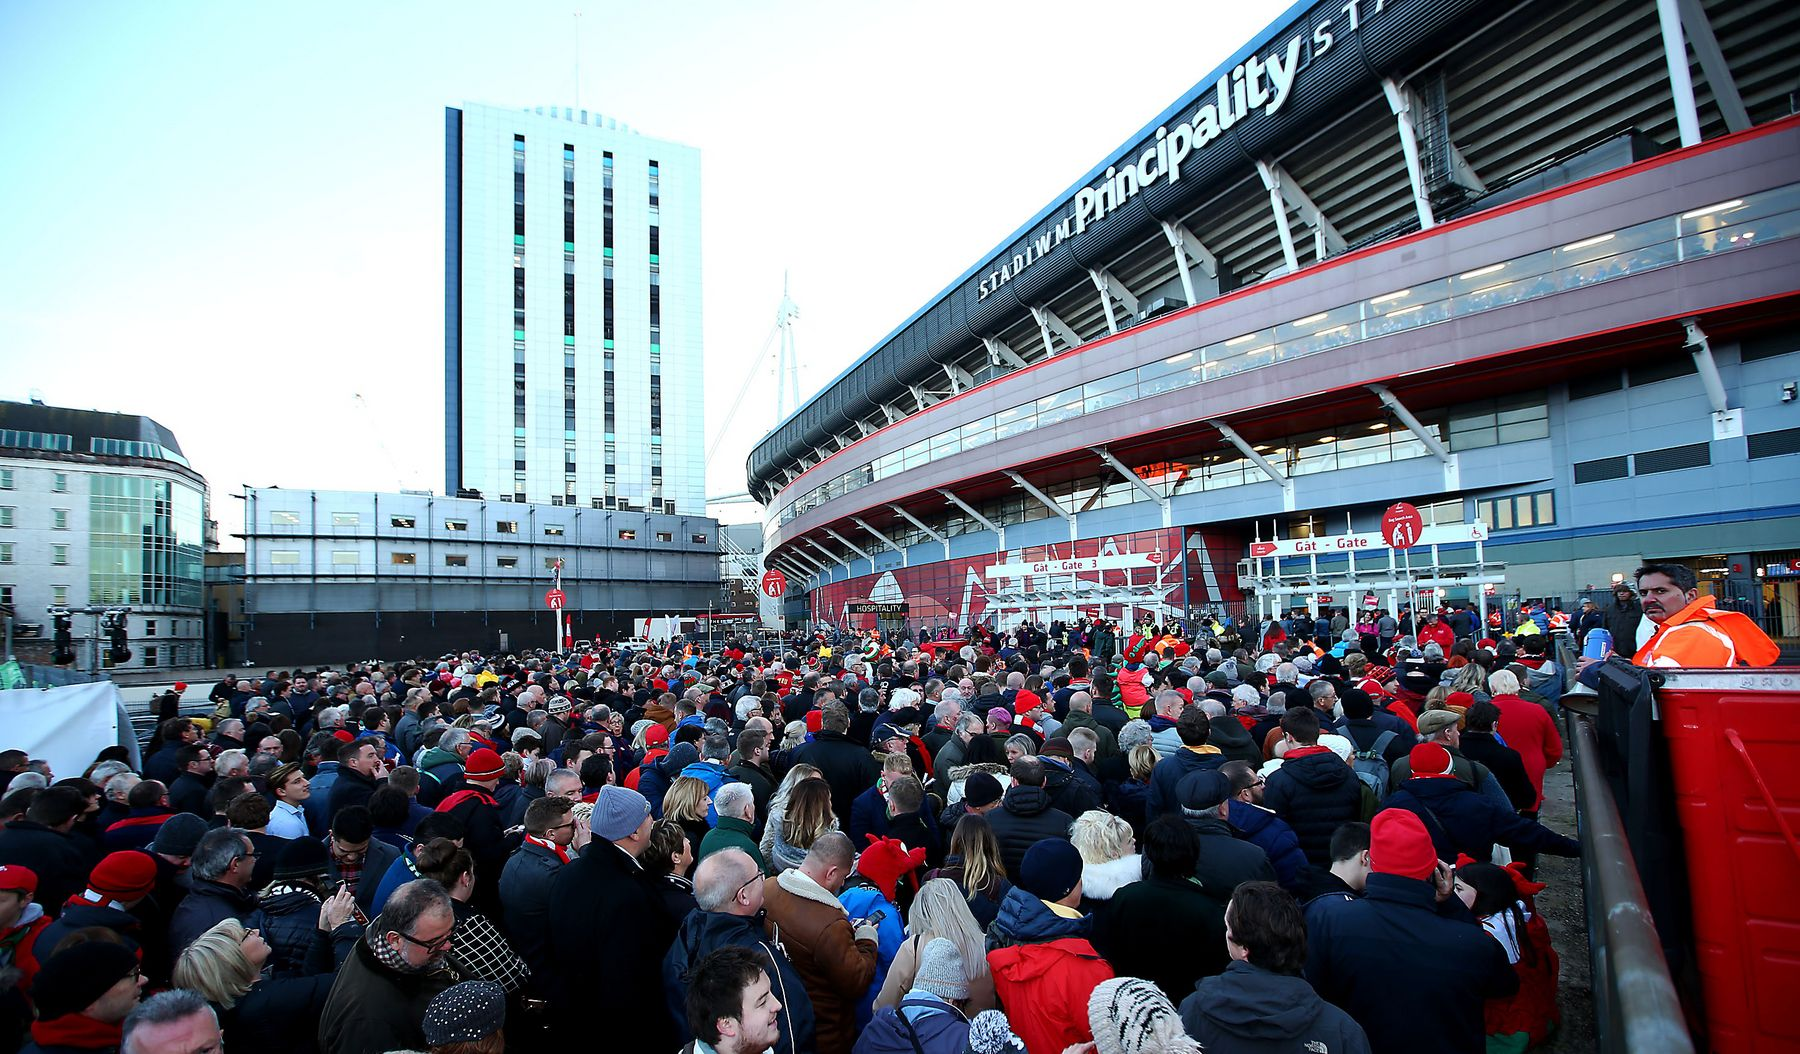 Stadium chief urges fans 'to get in early'